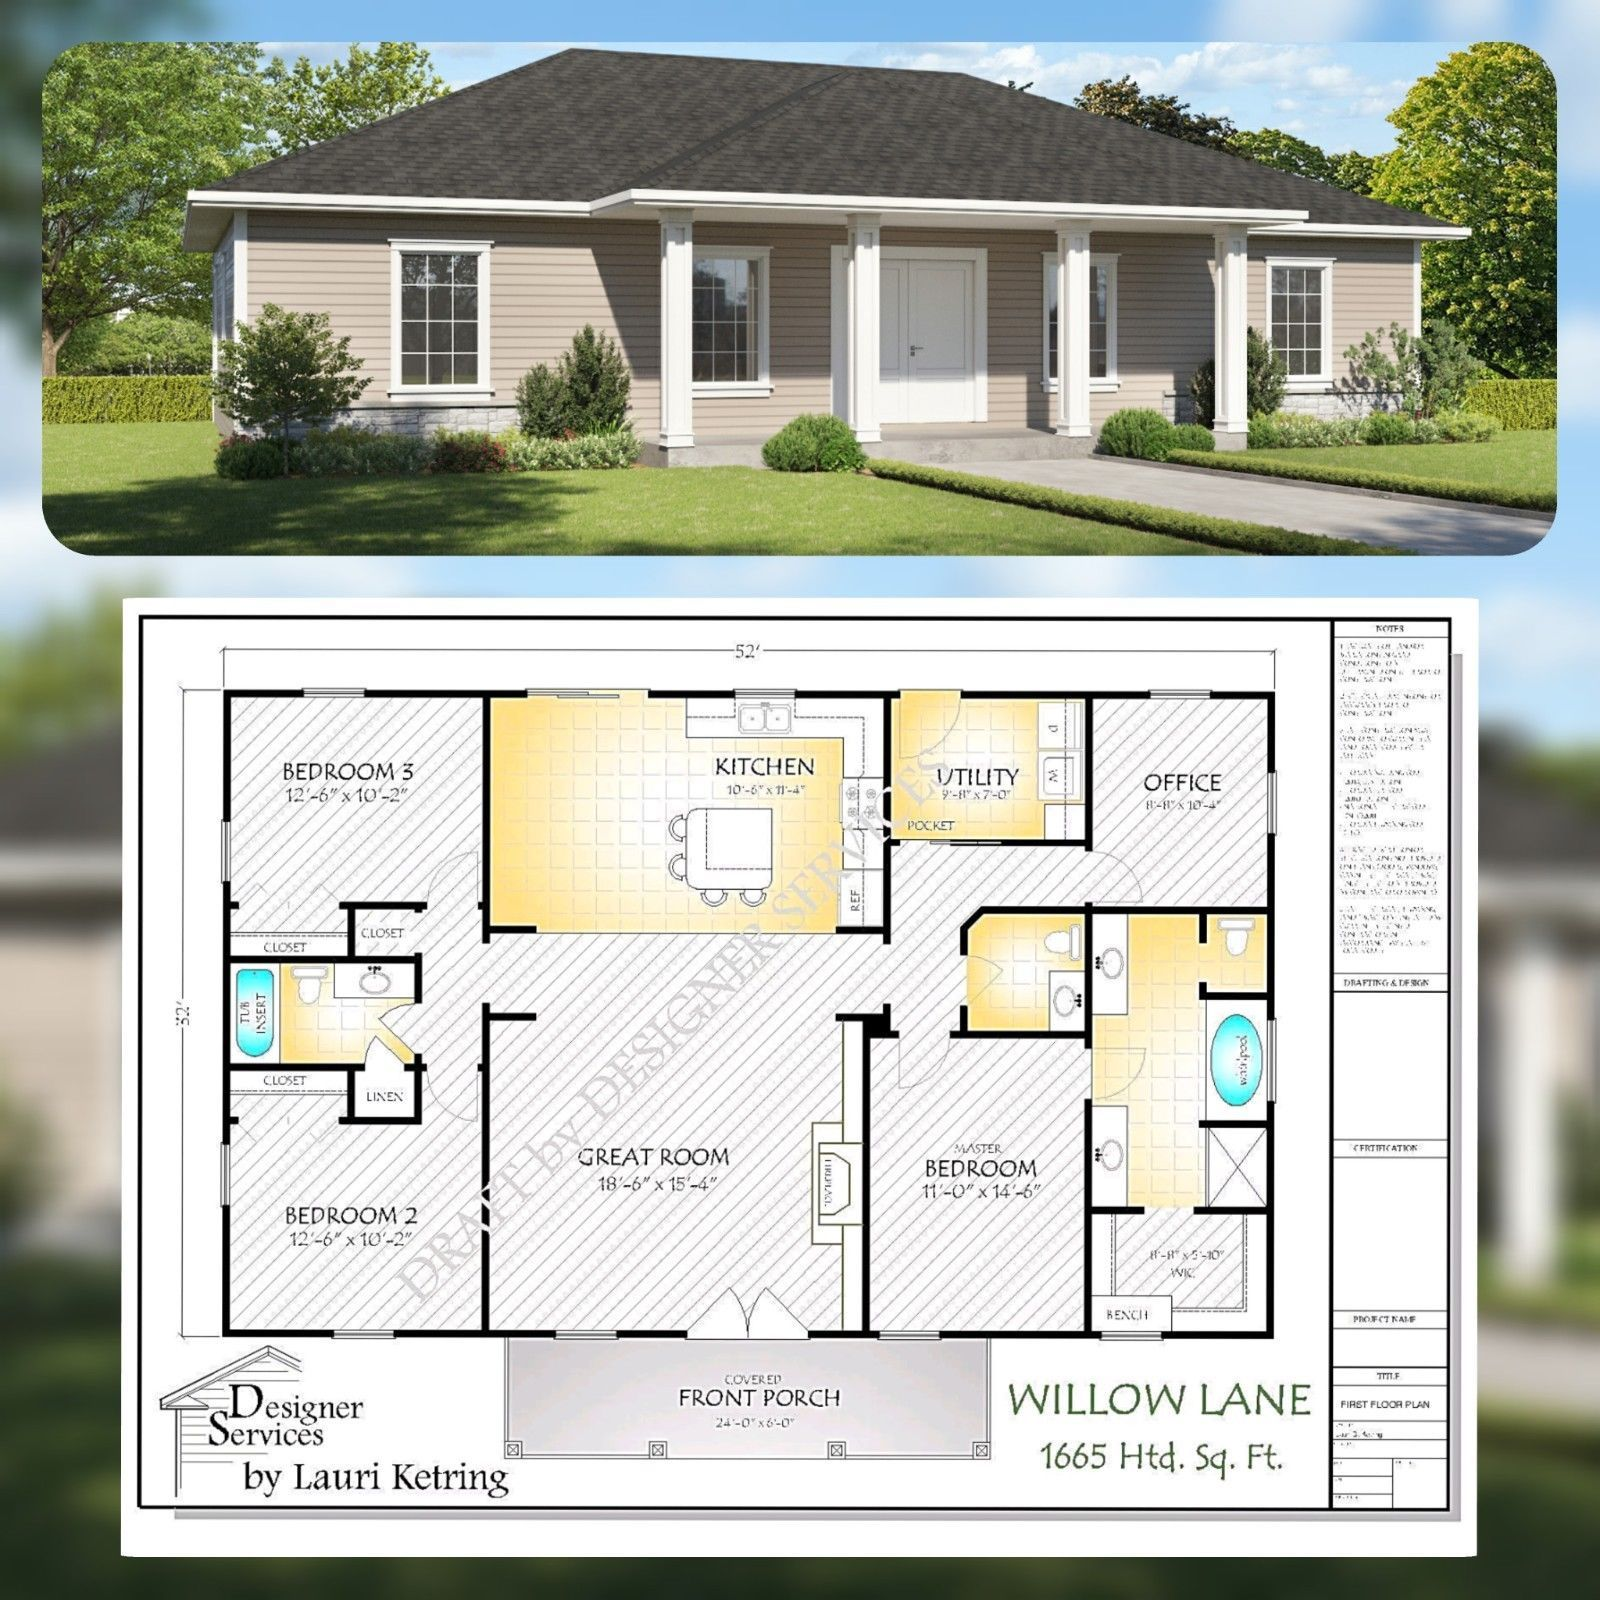 Willow Lane Custom Home House Plan,1650 Sq Ft | New house ... on rambler house plans and designs, mid century modern room designs, rambler style house designs, custom ranch home designs, rambler house exterior designs,